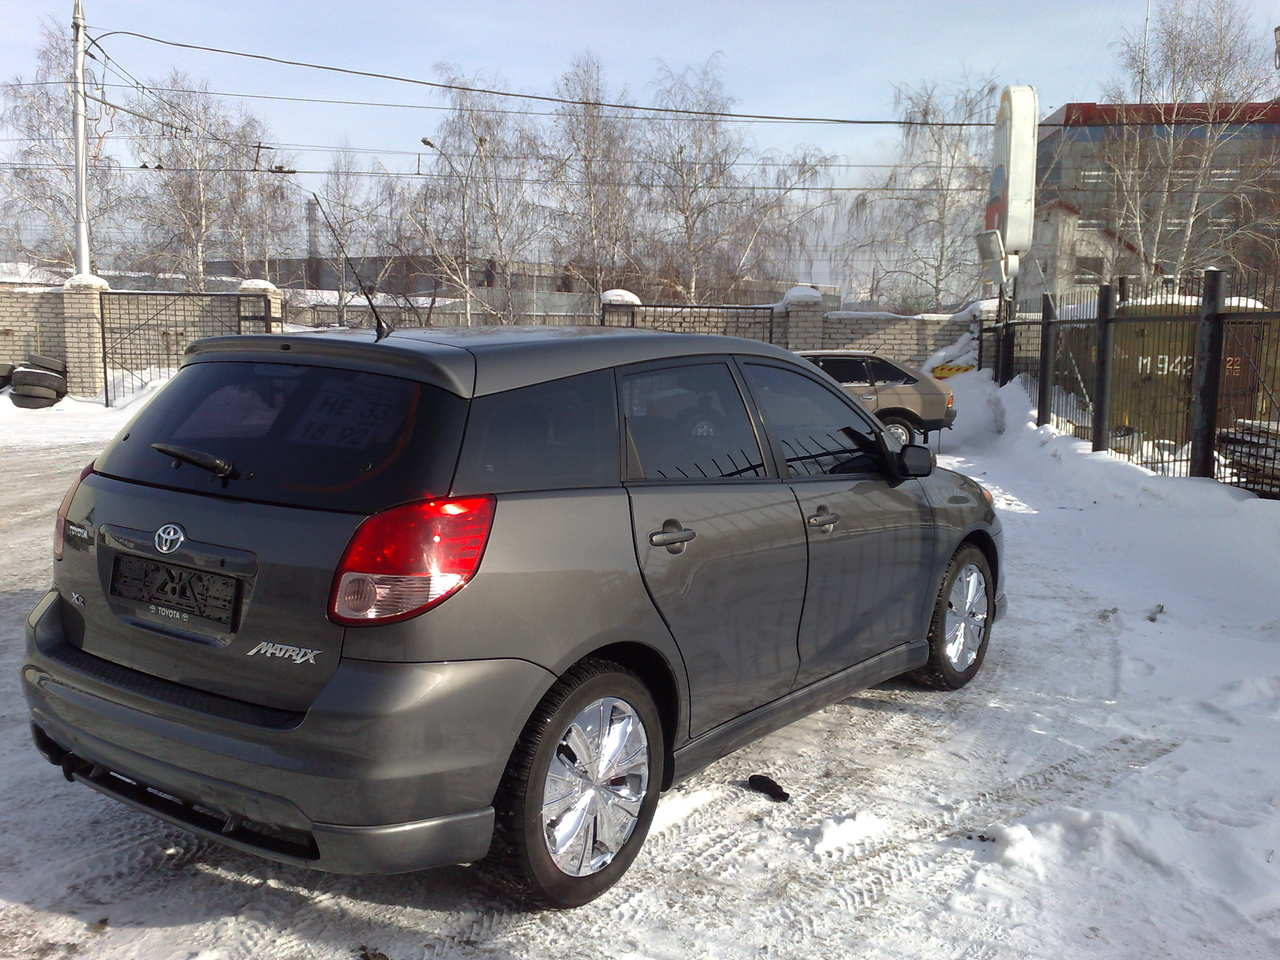 2004 toyota matrix pictures gasoline ff manual for sale. Black Bedroom Furniture Sets. Home Design Ideas